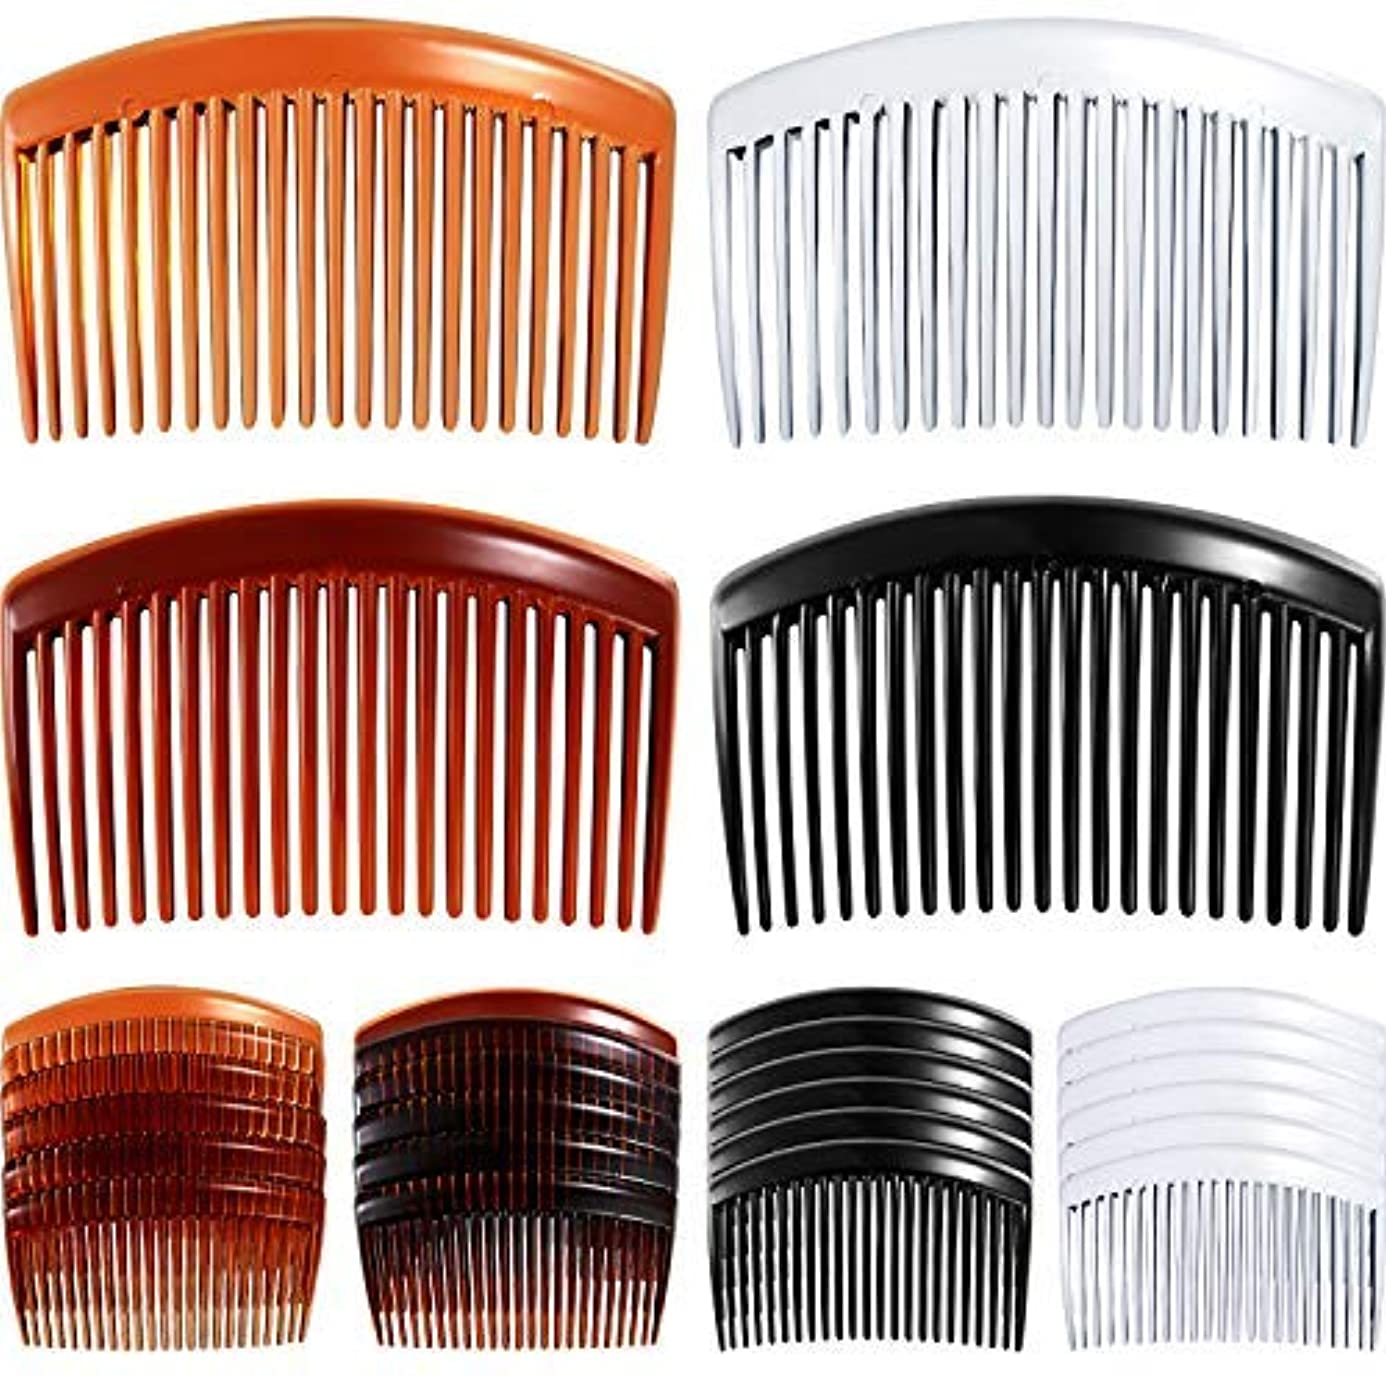 にんじん高潔なアプライアンス24 Pieces Hair Comb Plastic Hair Side Combs Straight Teeth Hair Clip Comb Bridal Wedding Veil Comb for Fine Hair [並行輸入品]